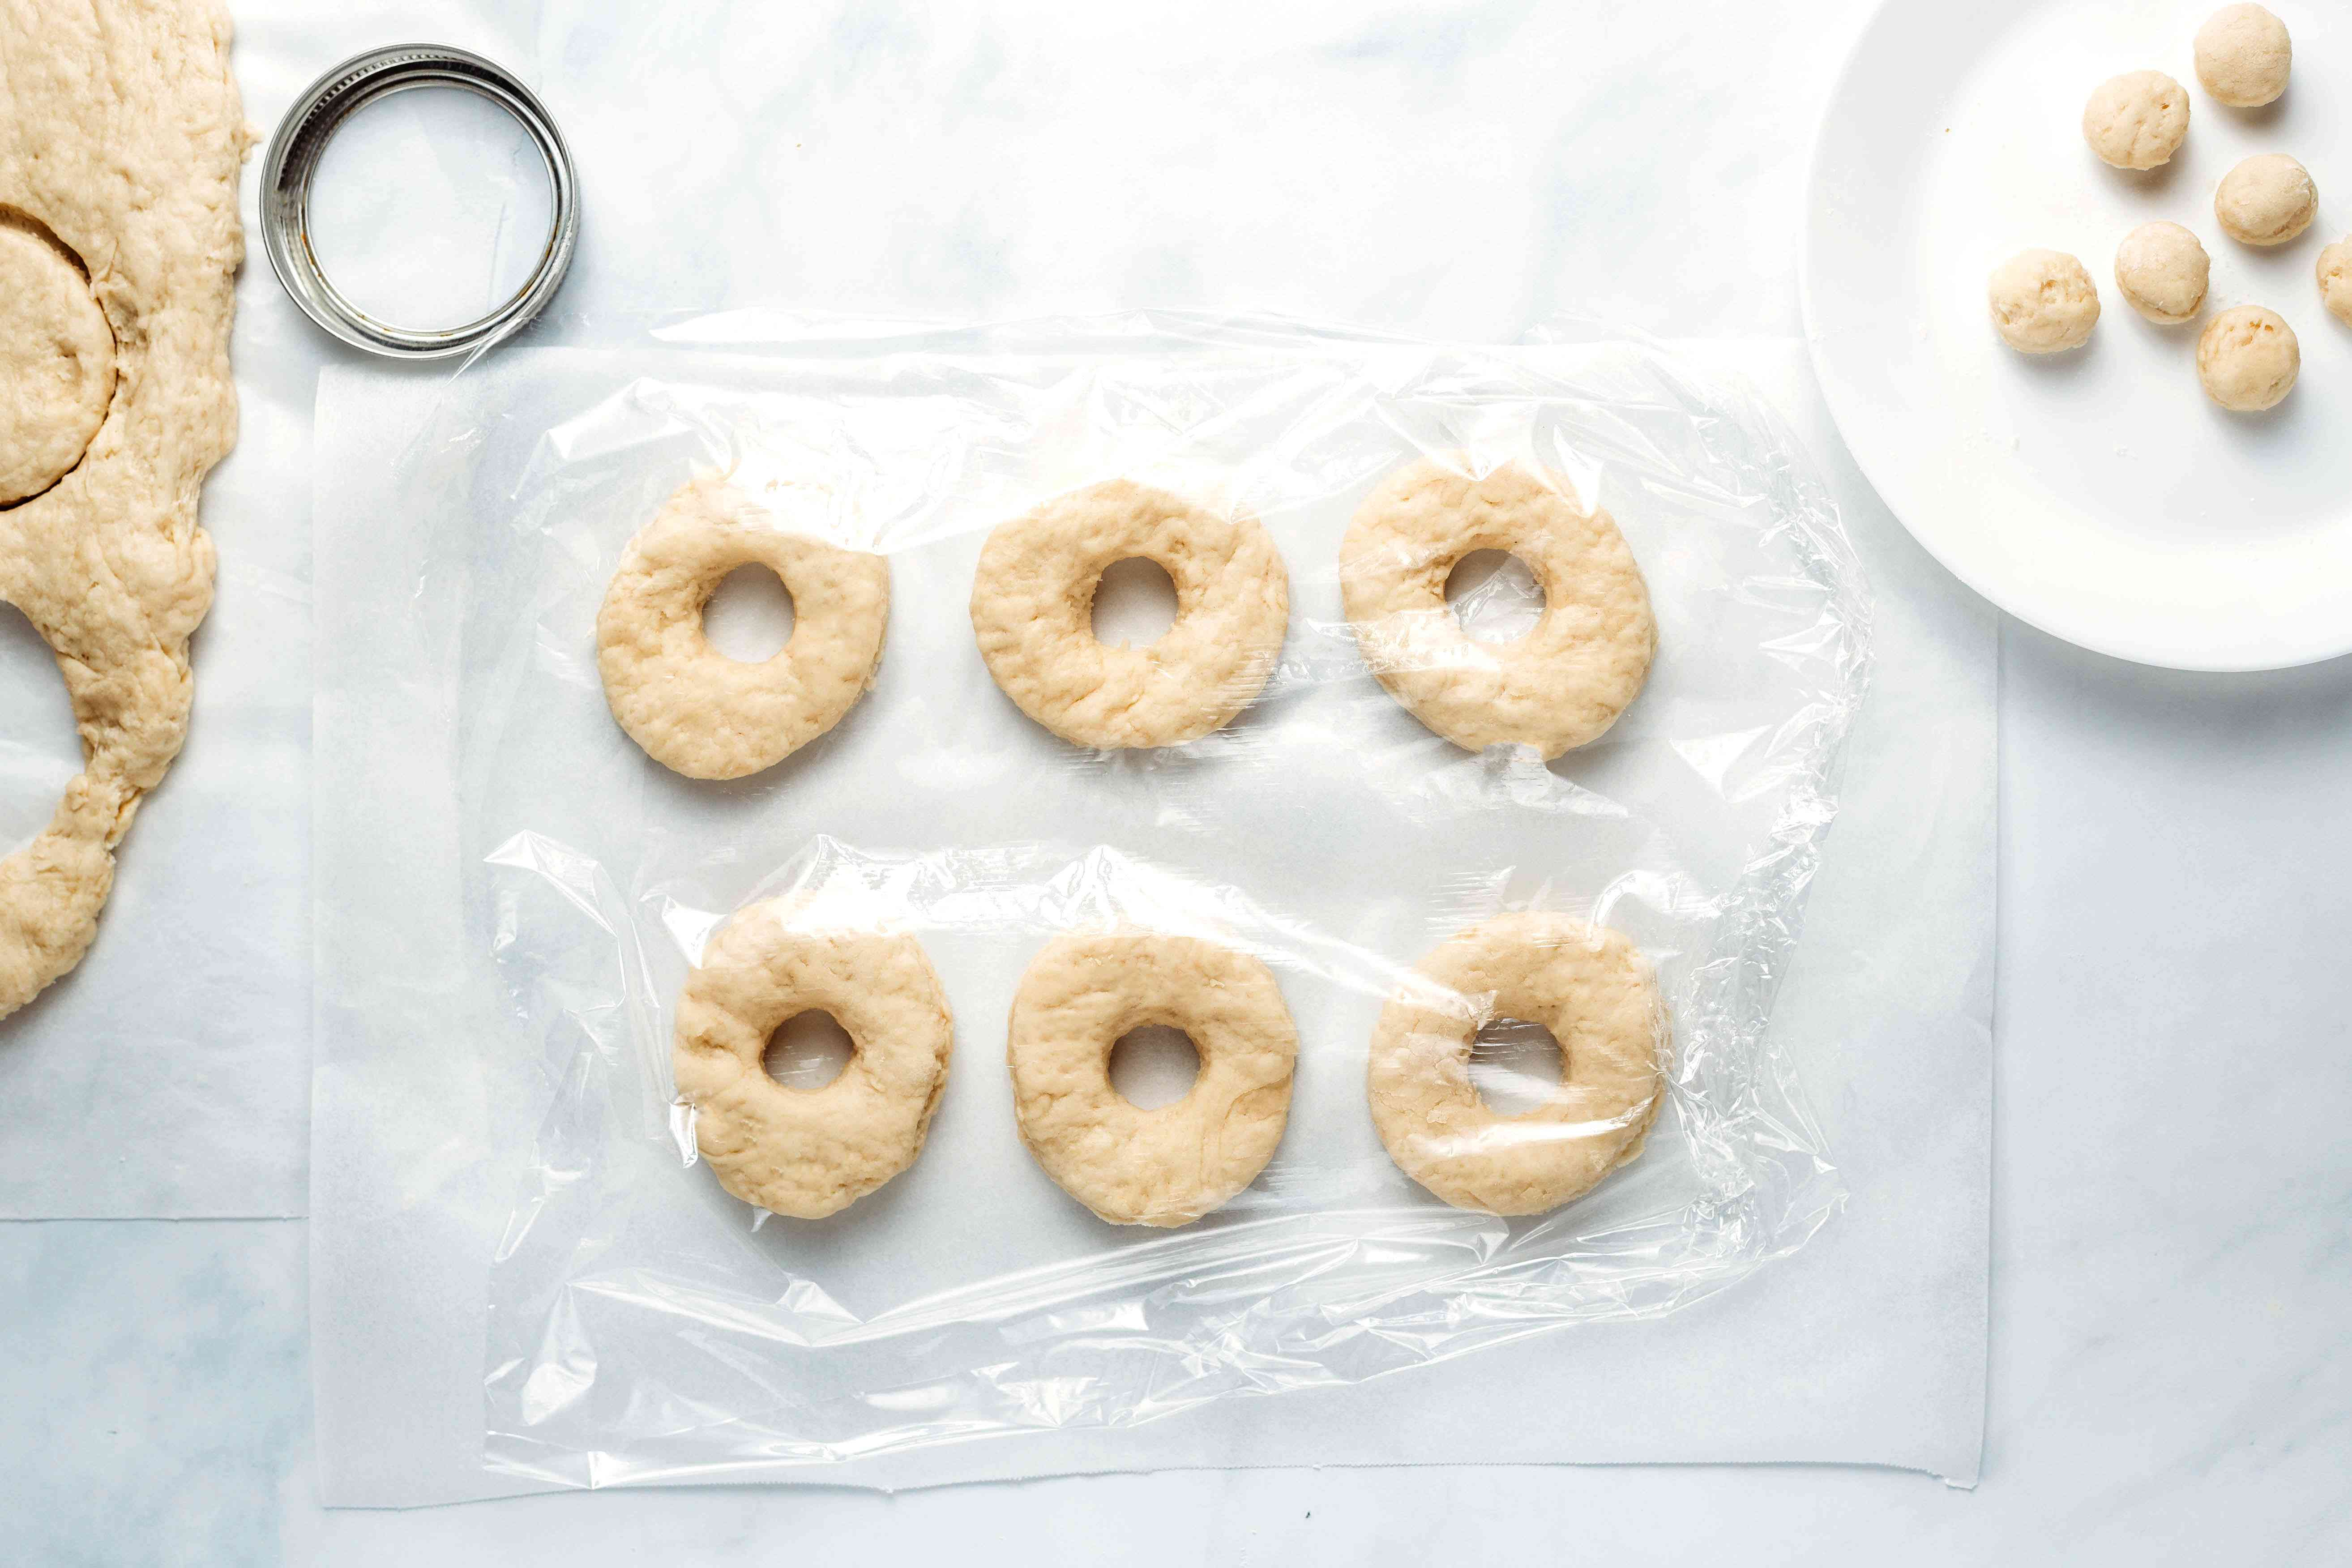 Cronut Dough shaped into donut shapes, on parchment paper covered in plastic wrap